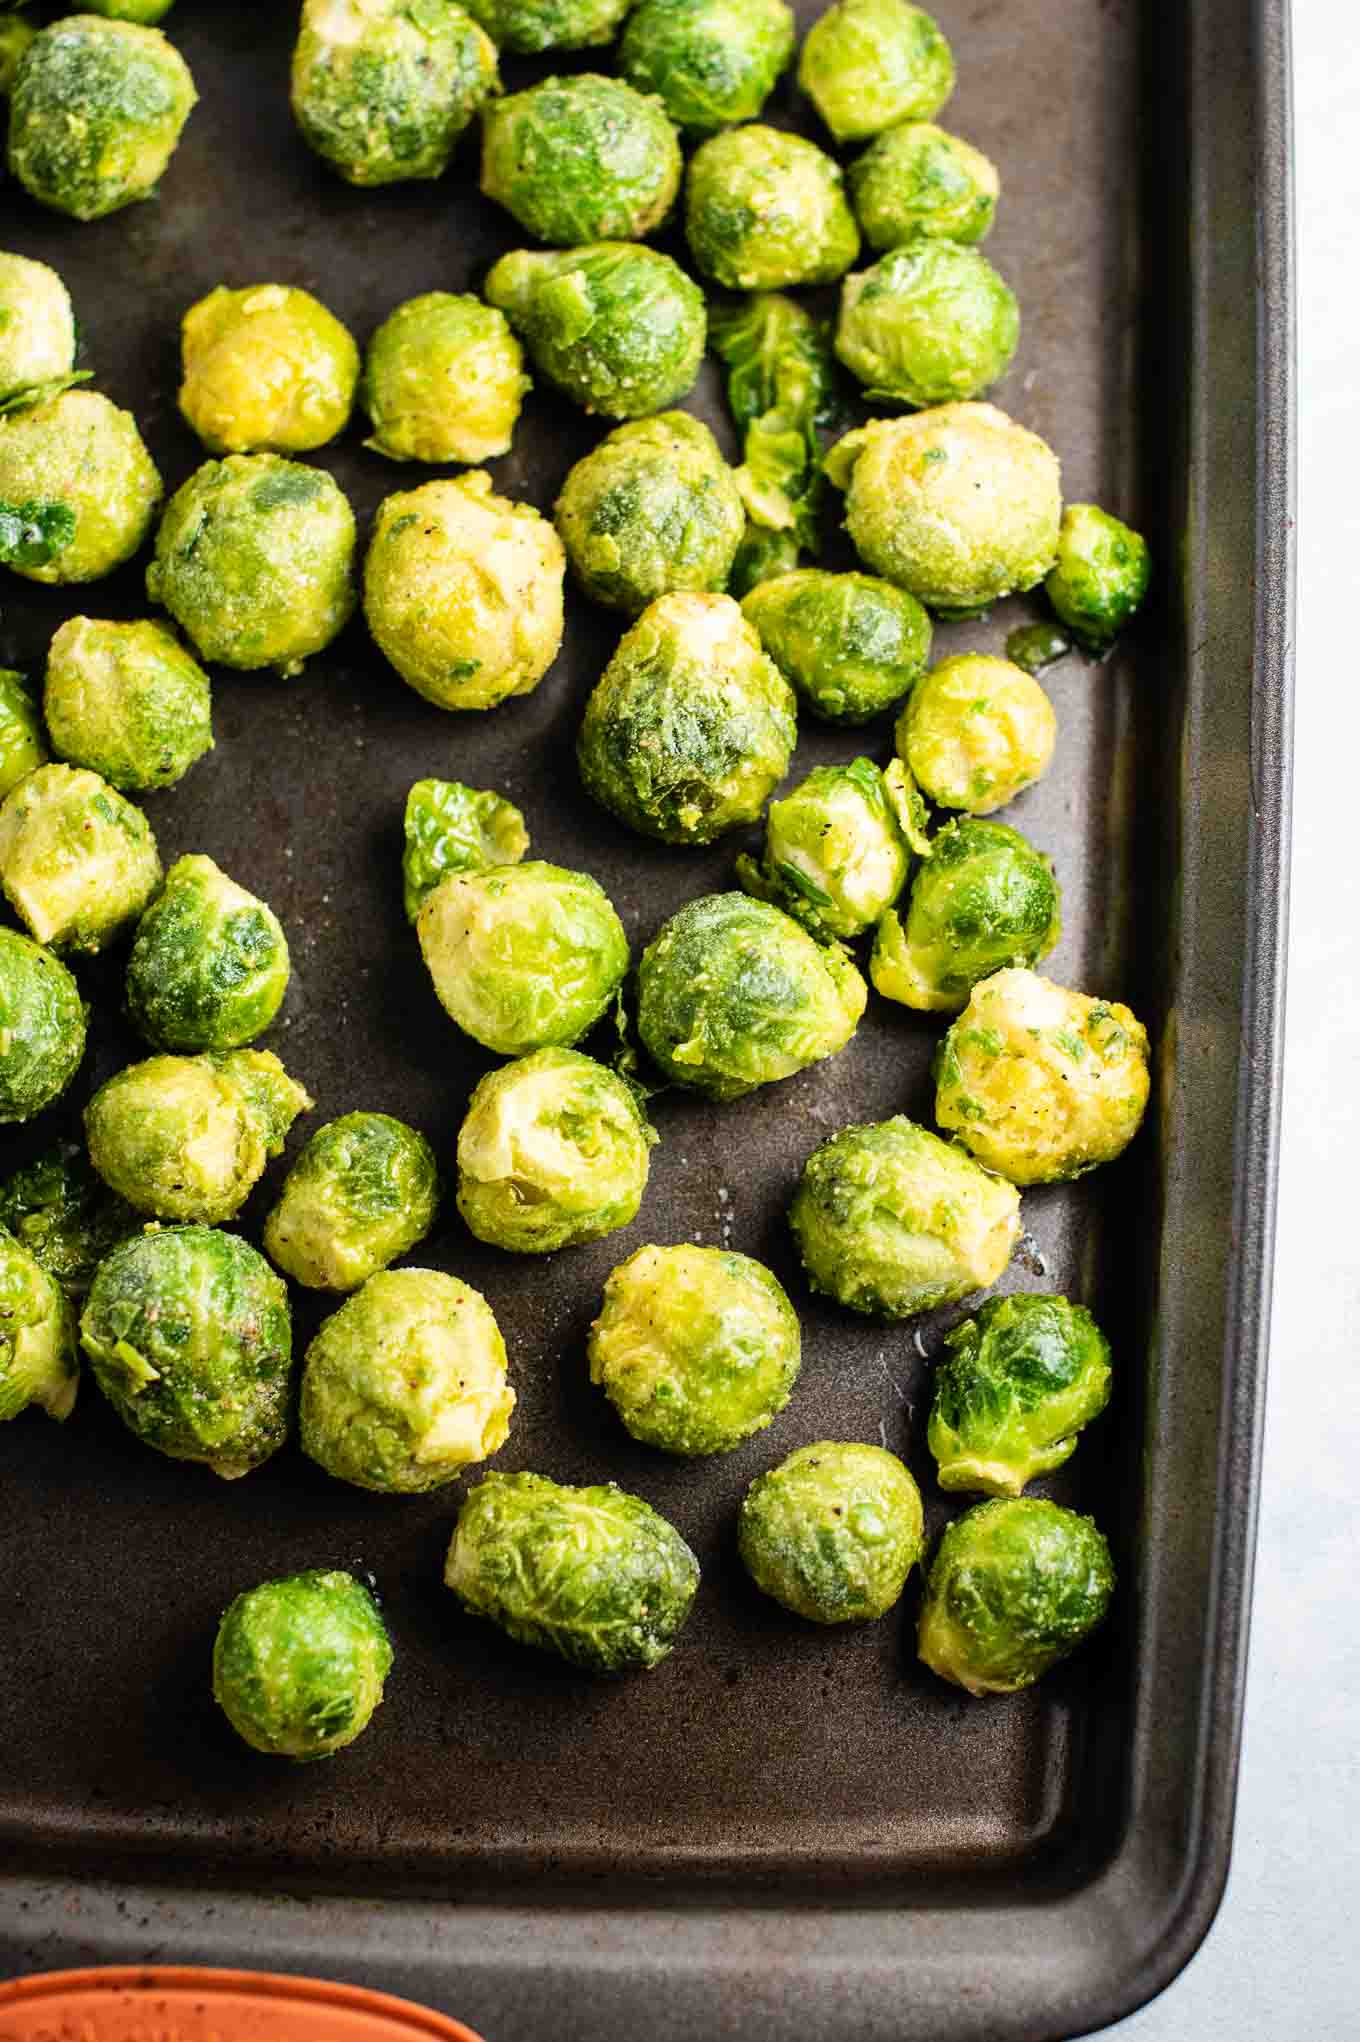 whole frozen brussels sprouts on a baking sheet before roasting